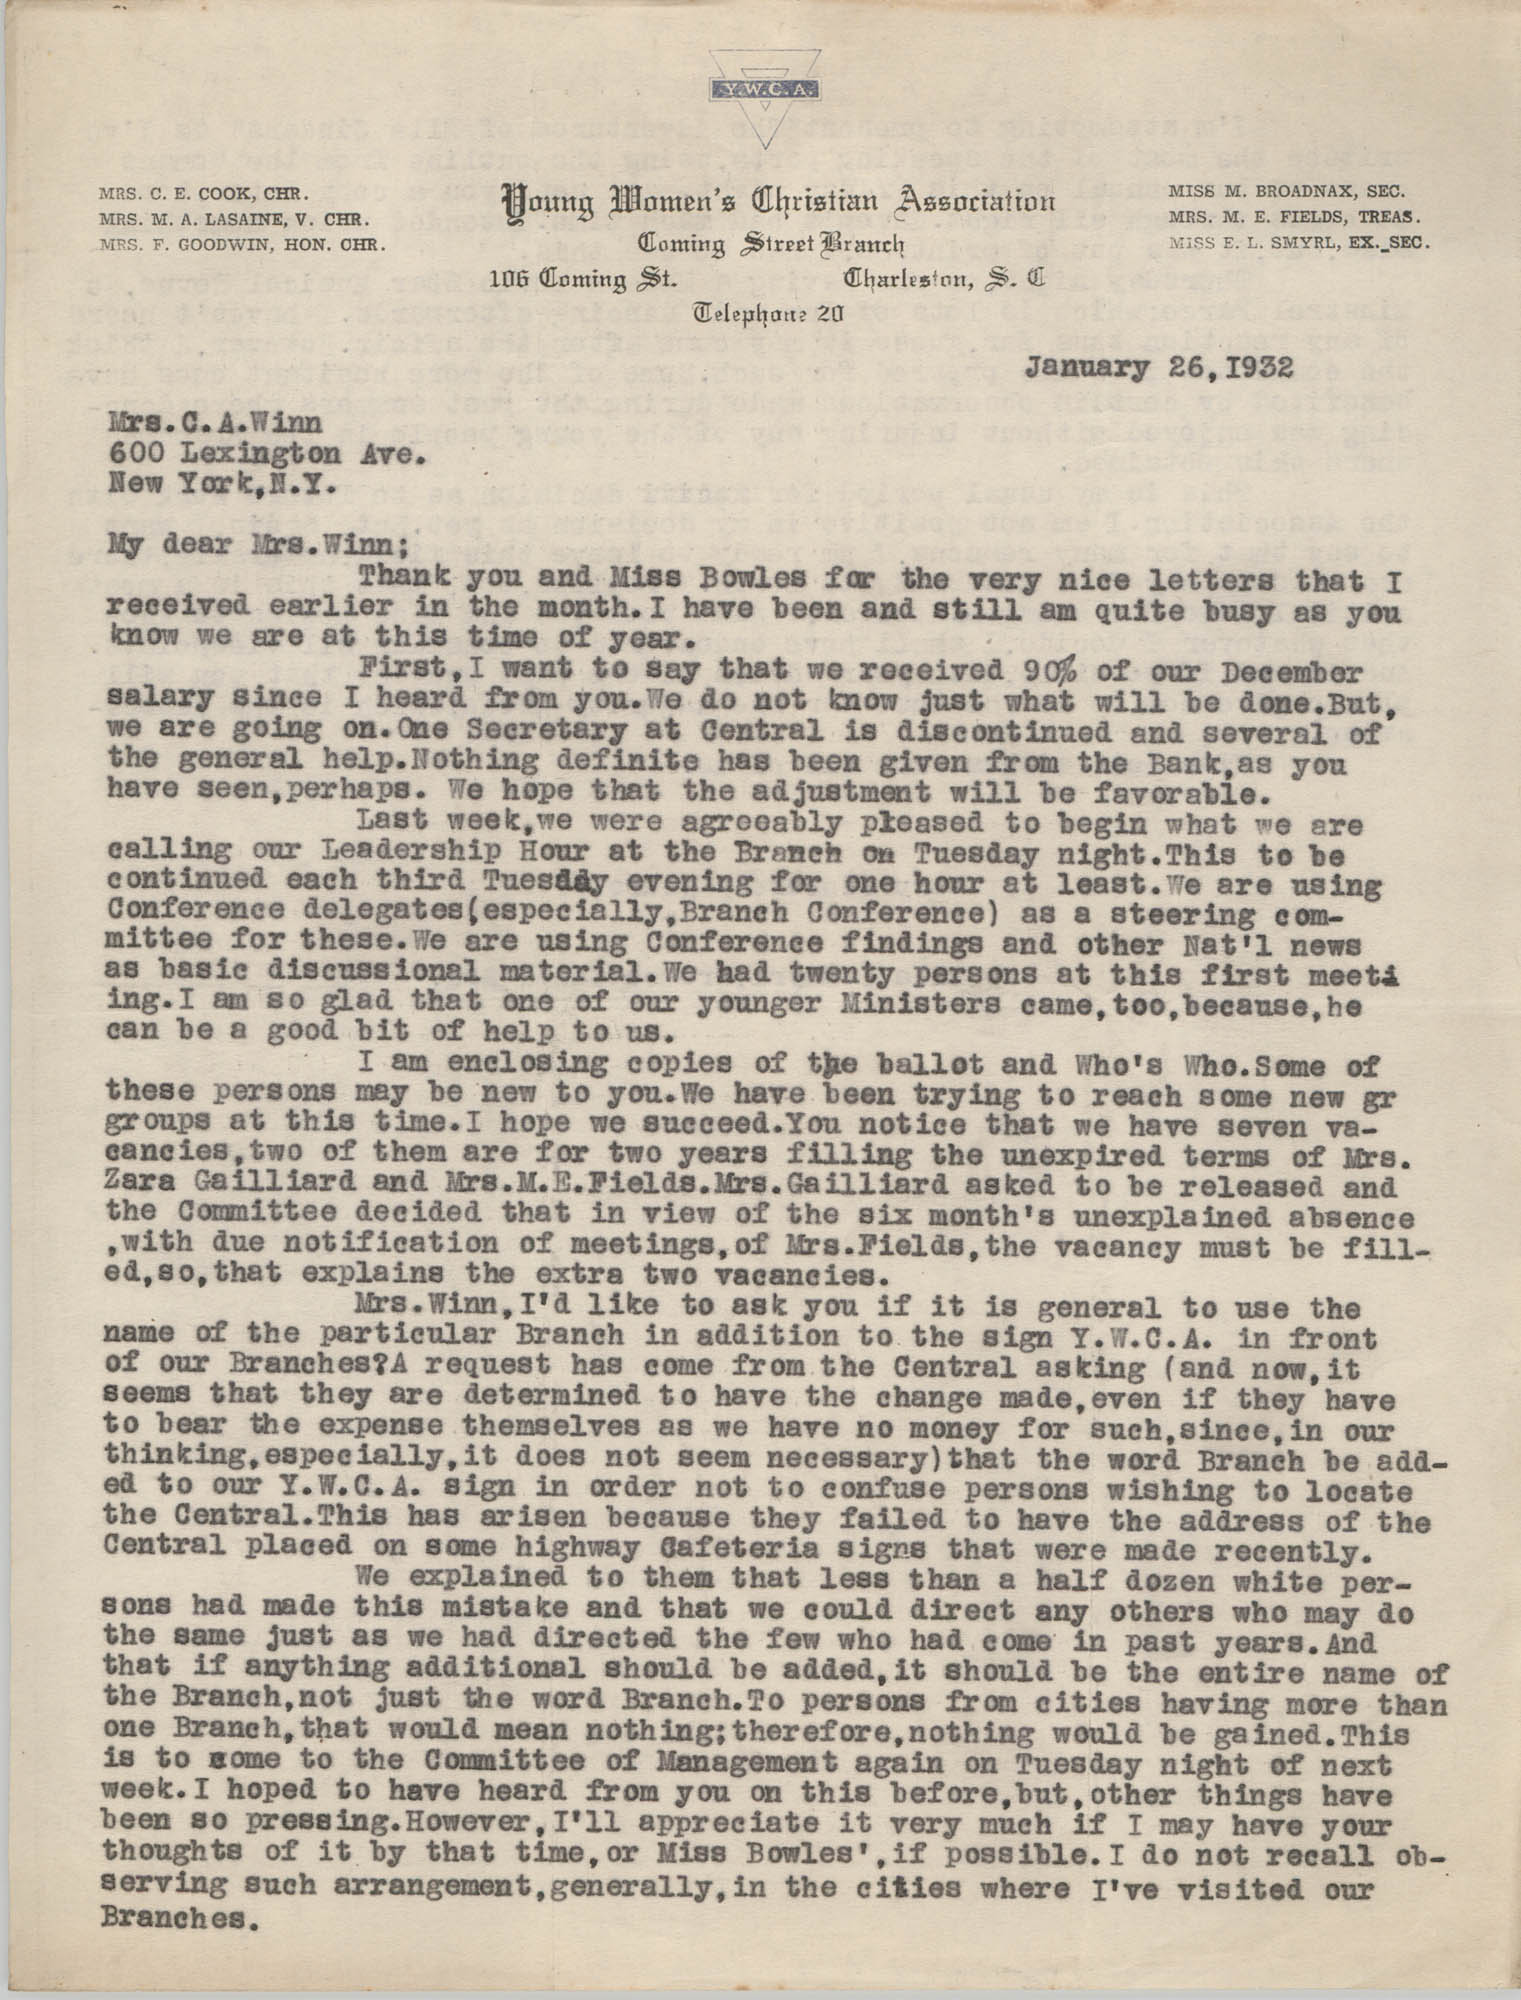 Letter from Ella L. Smyrl to Cordella A. Winn, January 26, 1932